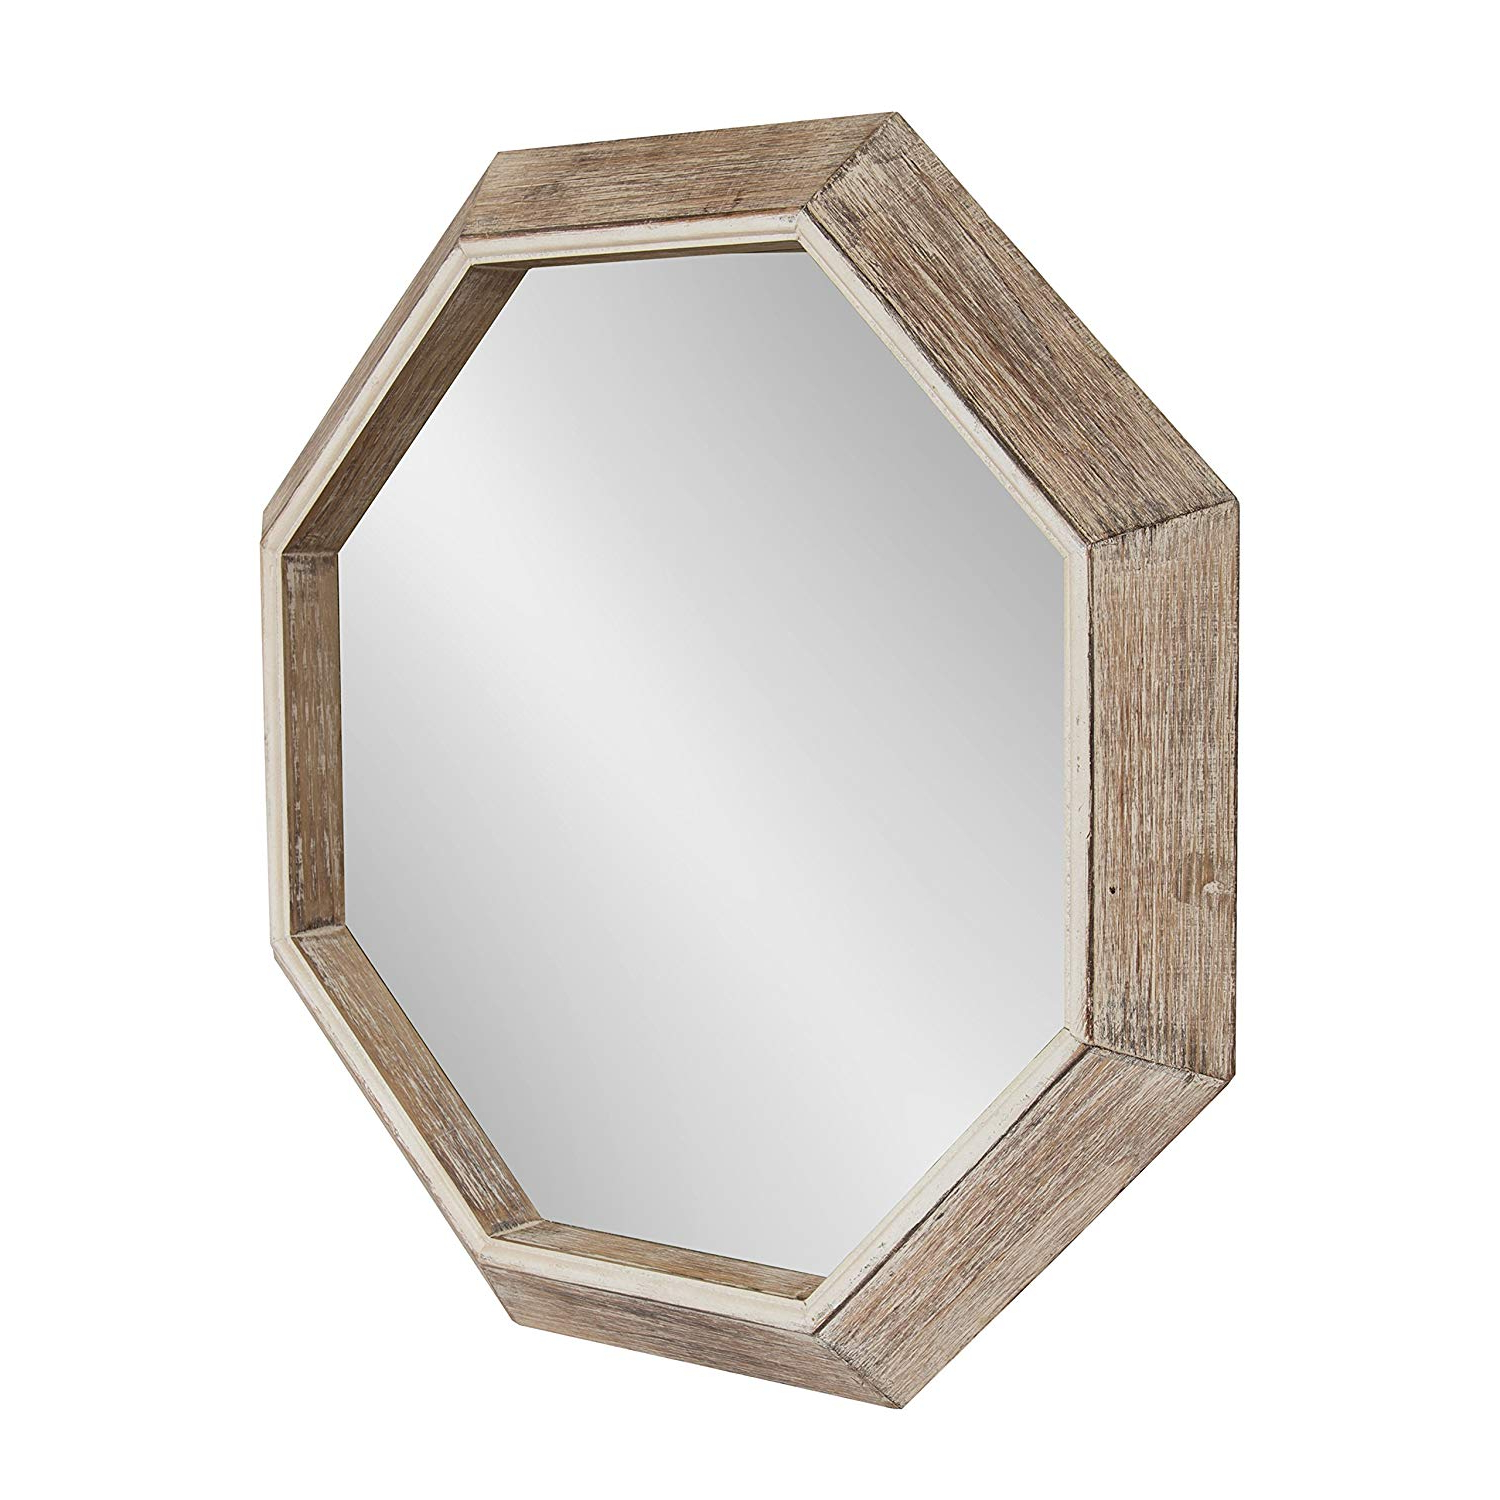 Large Wooden Wall Mirrors Pertaining To Most Recently Released Kate And Laurel Yves Large Rustic Wooden Octagon Wall Mirror, White, 30 X 30 (Gallery 8 of 20)